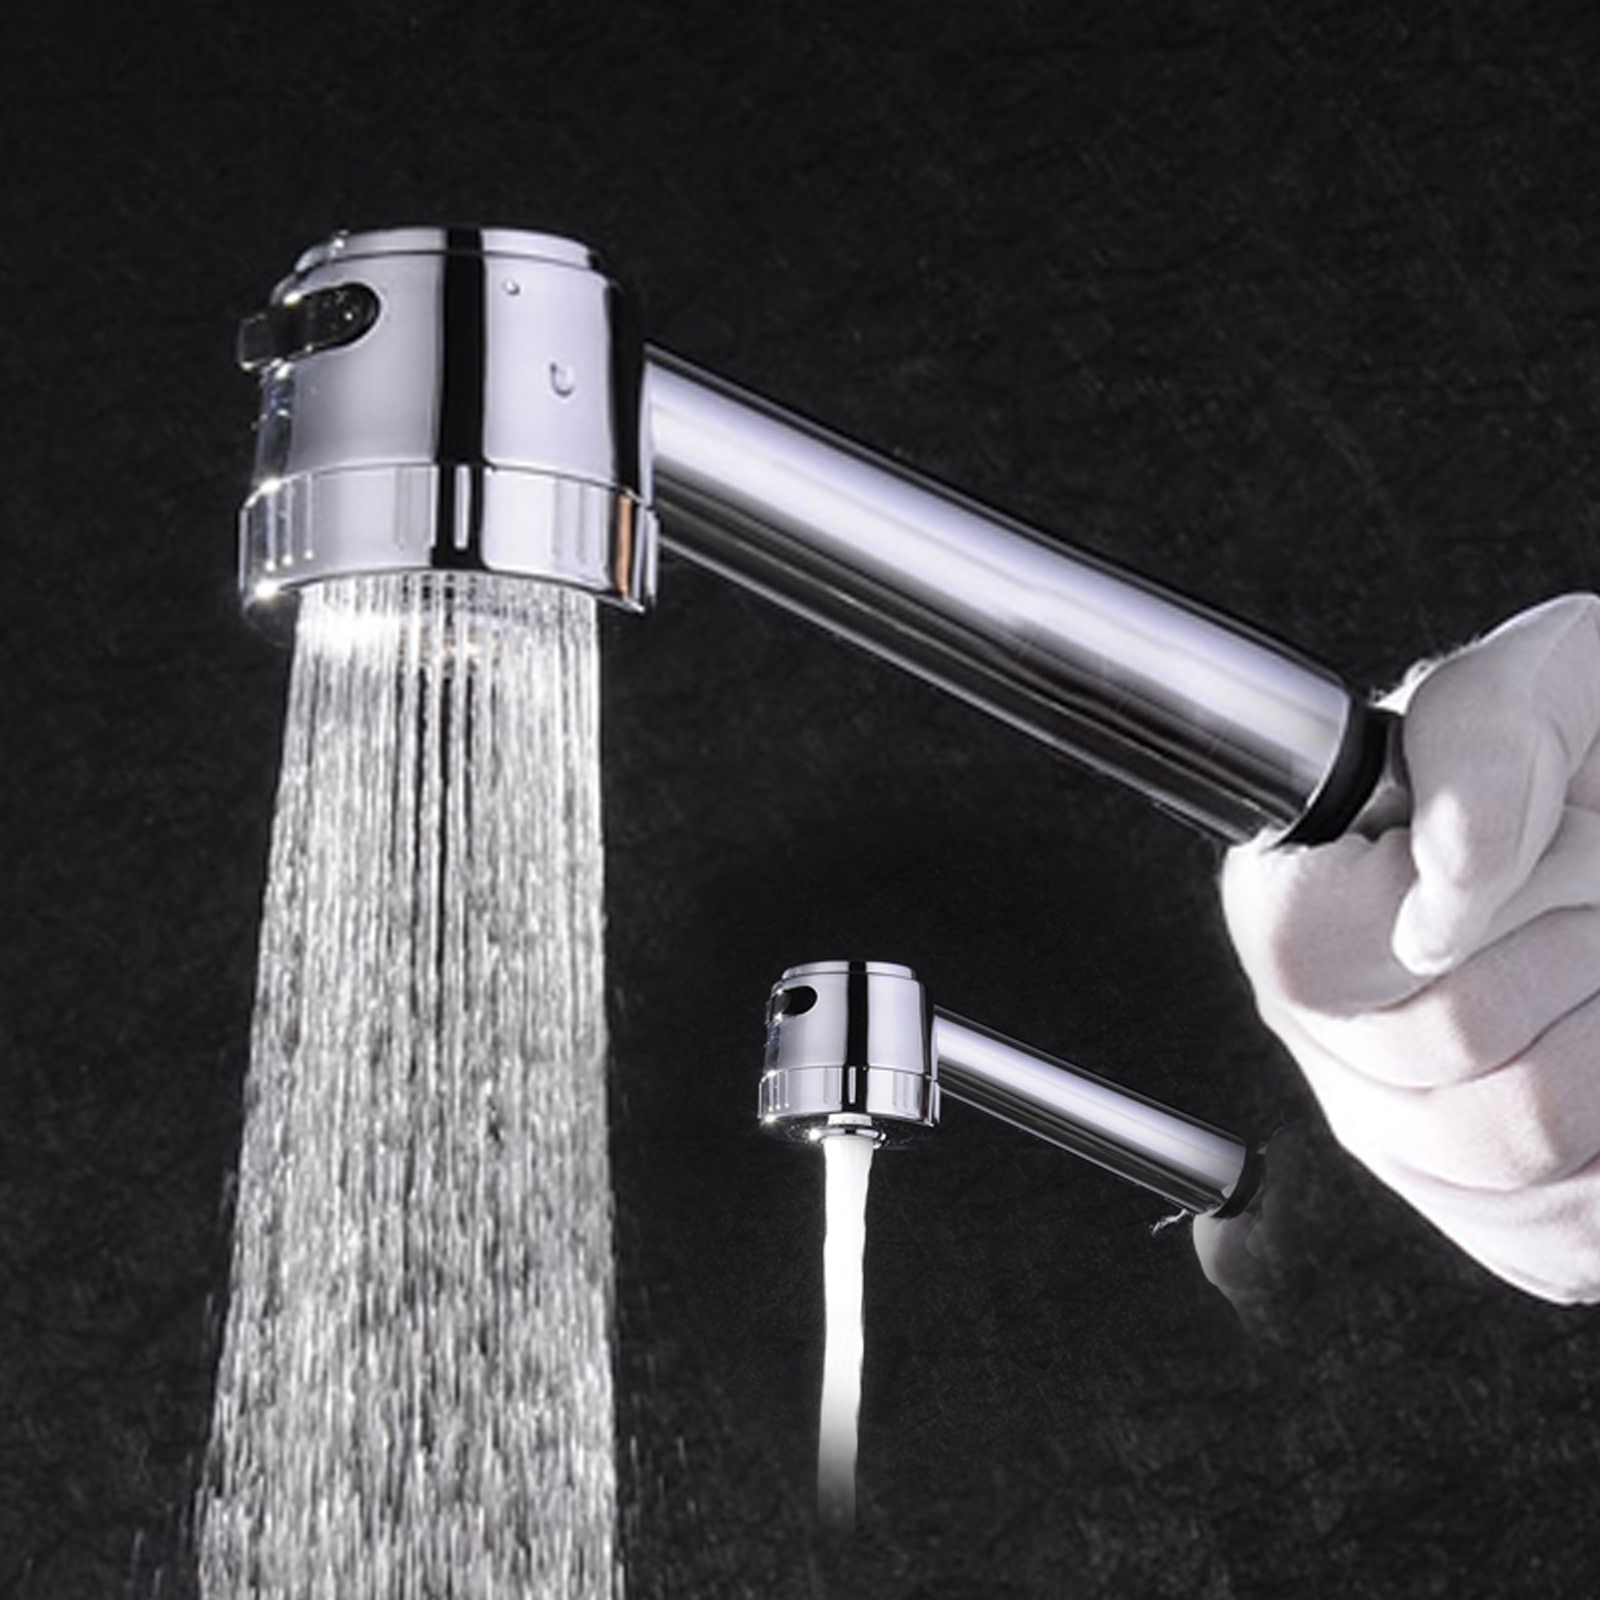 Aca Pull Out Spout Kitchen Sink Mixer Tap Laundry Faucet Spray Head Water Saving Ebay